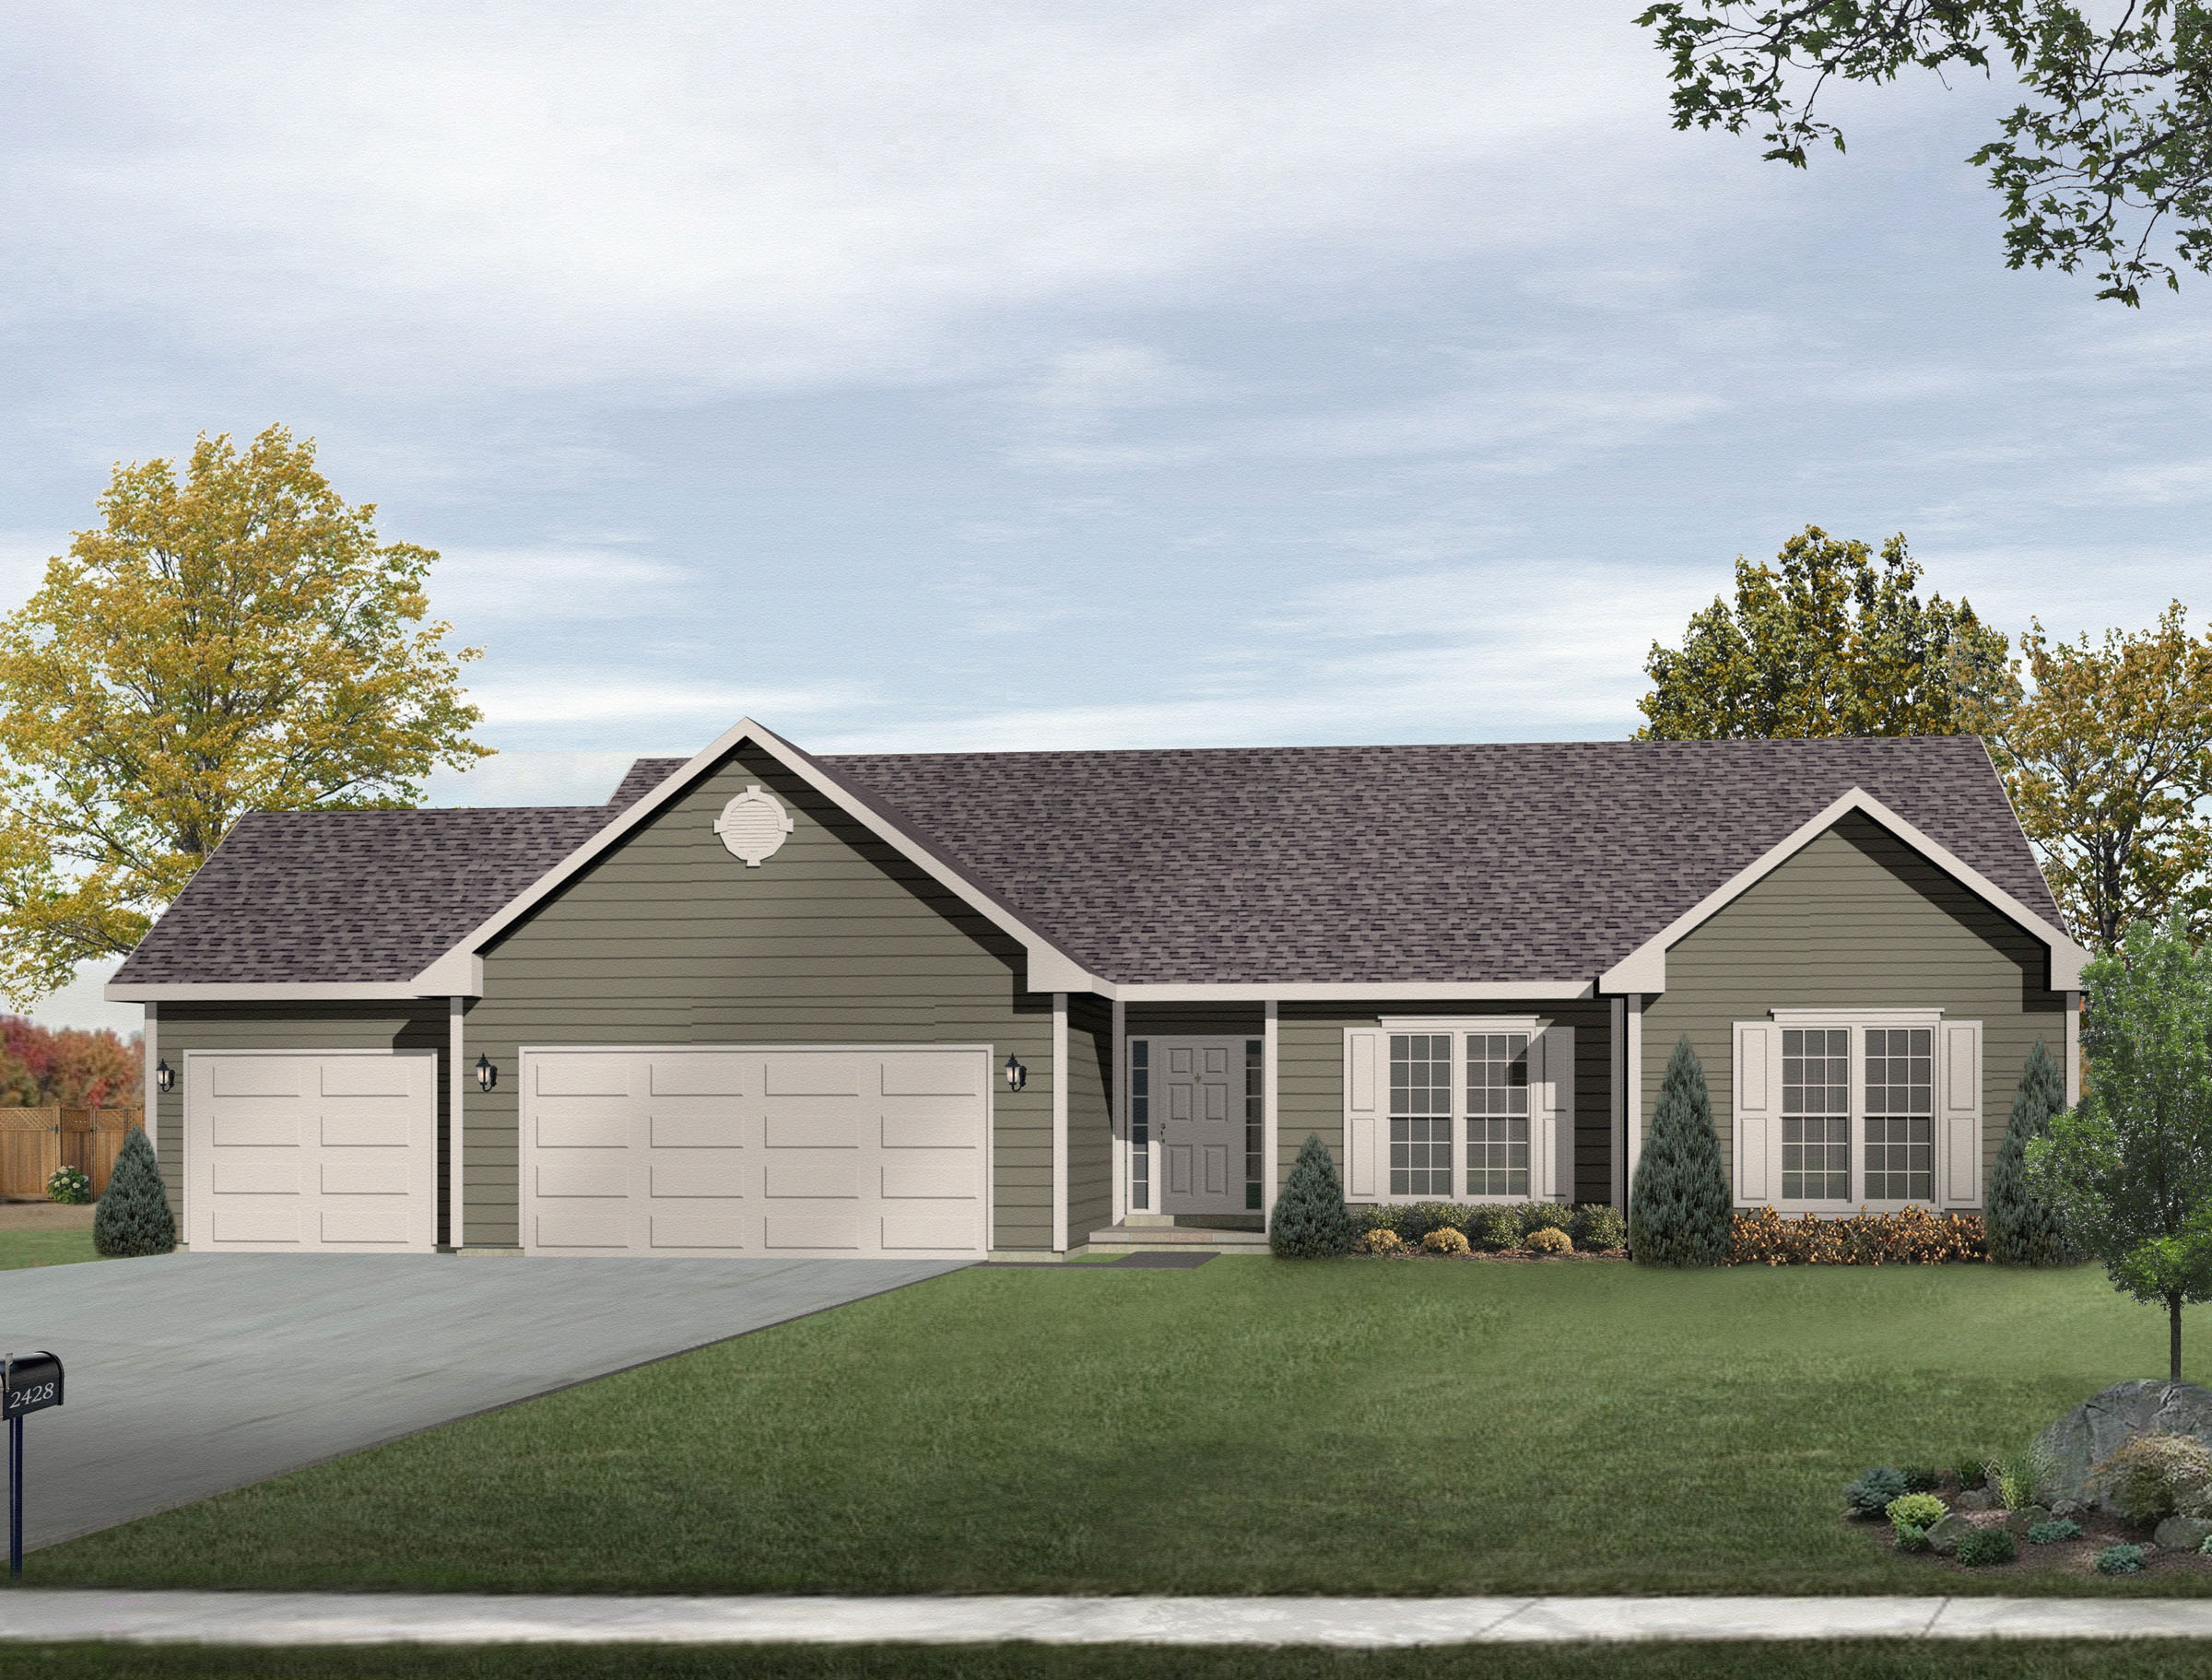 Ranch living with three car garage 2292sl for Ranch floor plans with 3 car garage